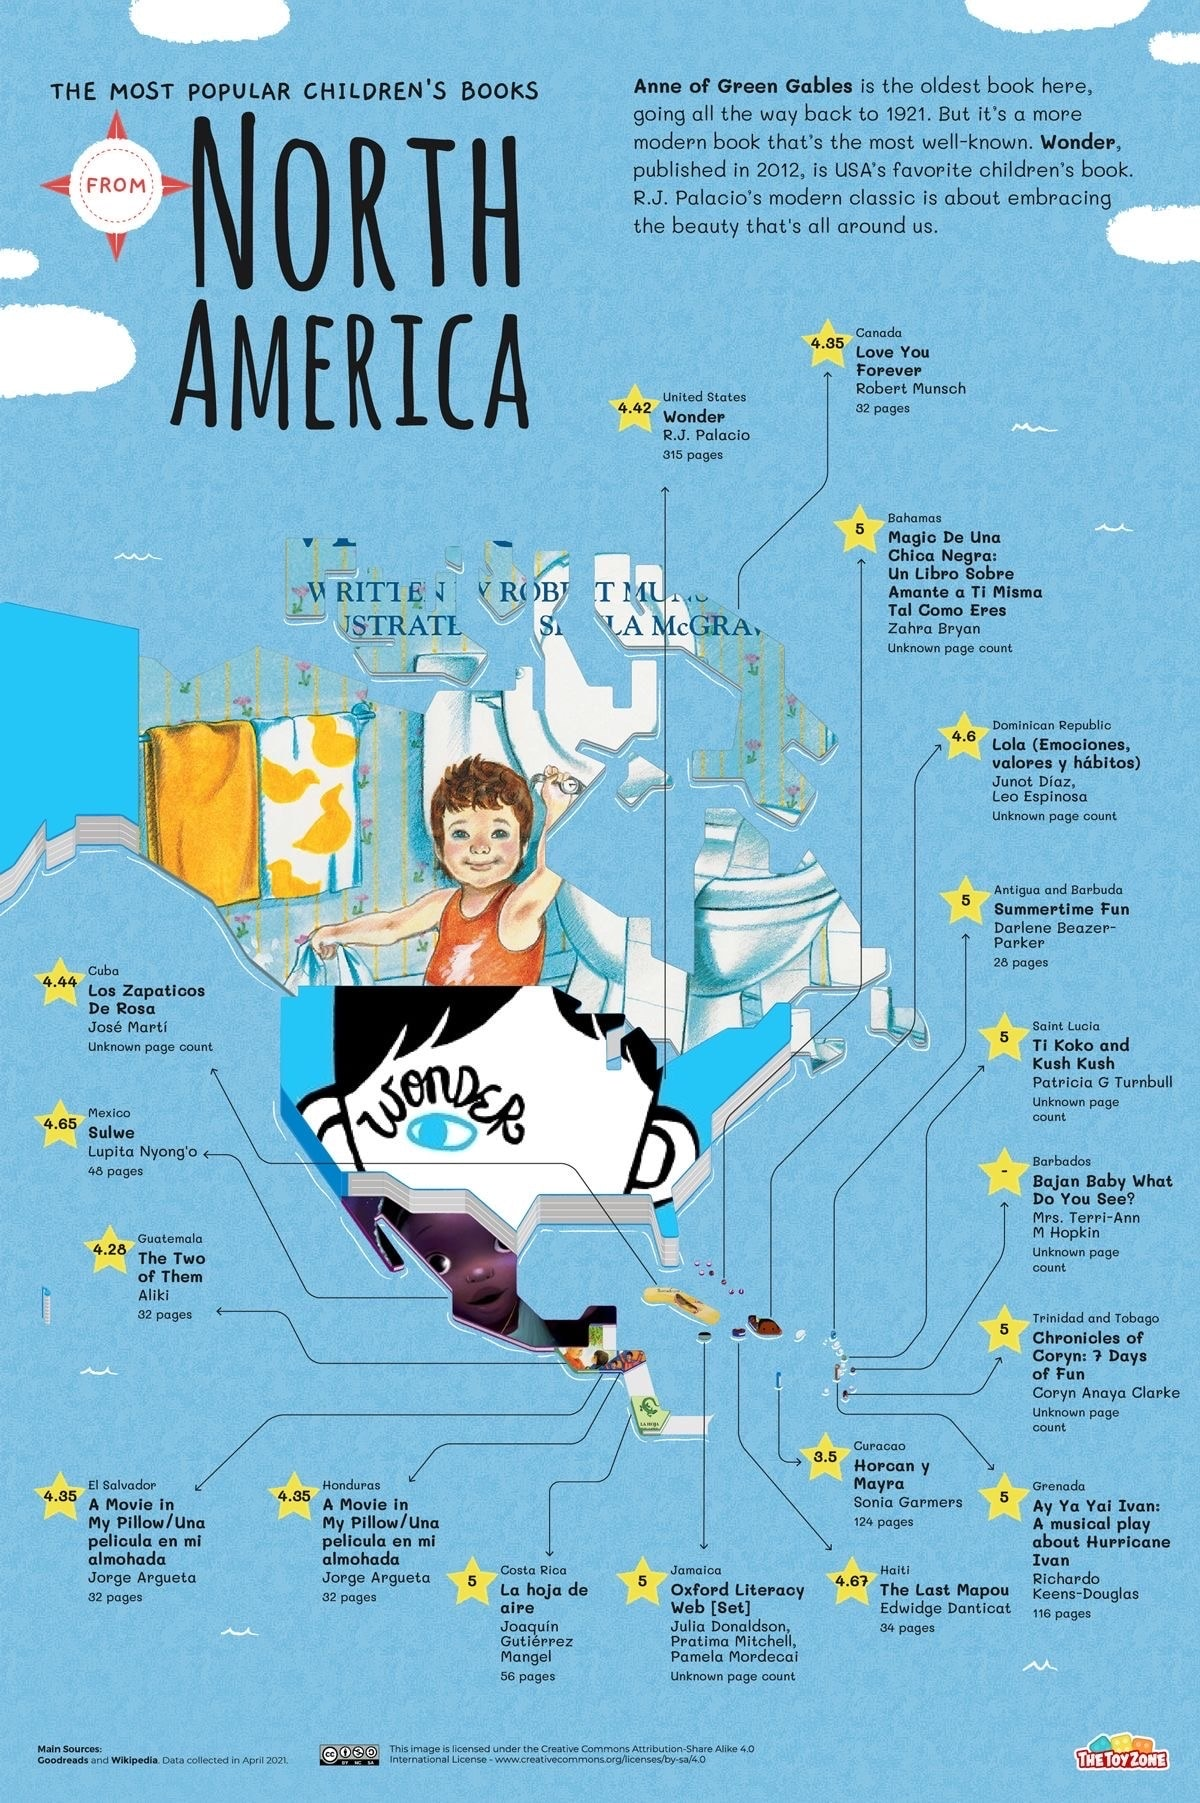 Most popular children's books from North America